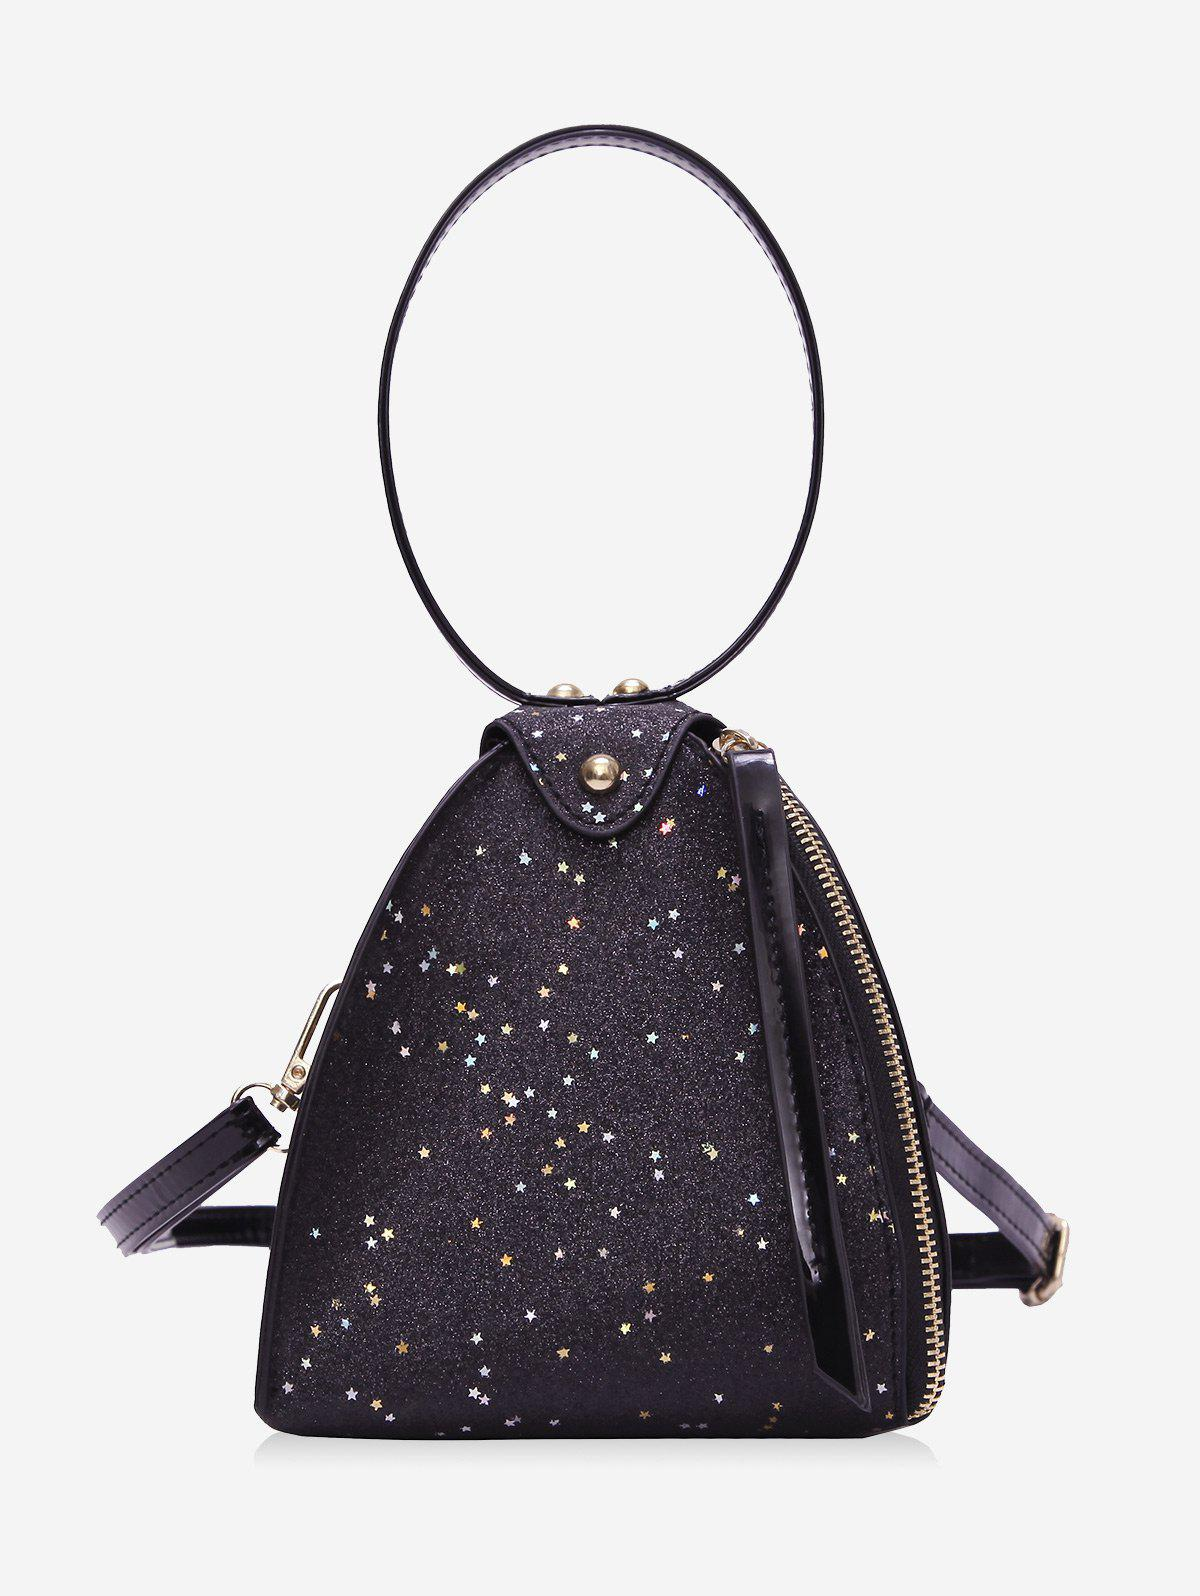 Buy Geometry Sequined Shimmer Handbag with Shoulder Strap